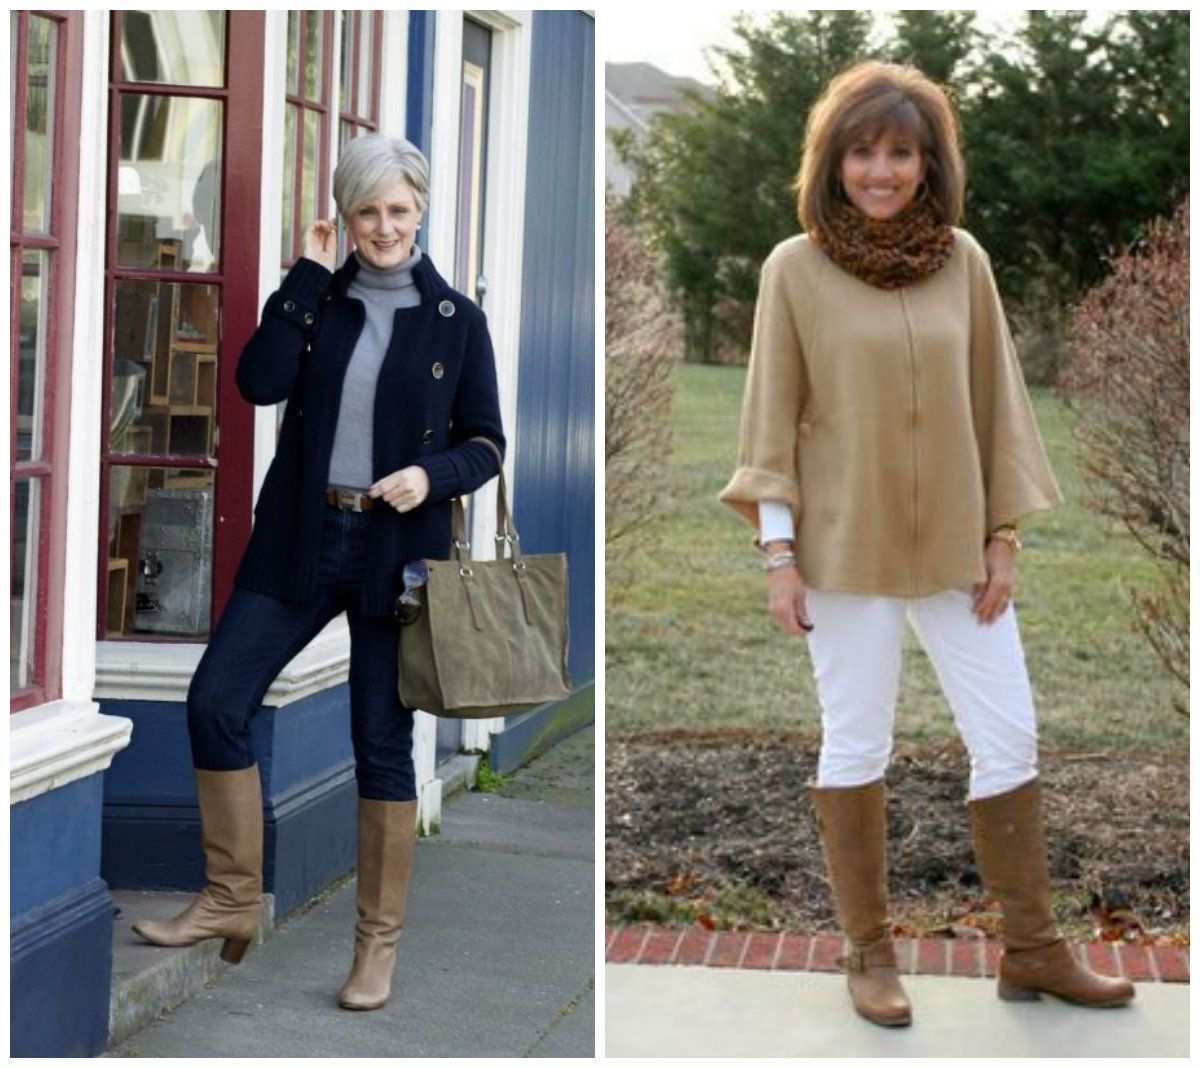 Pin by Amy Wells-Alsip on outfits I love | Casual winter ...